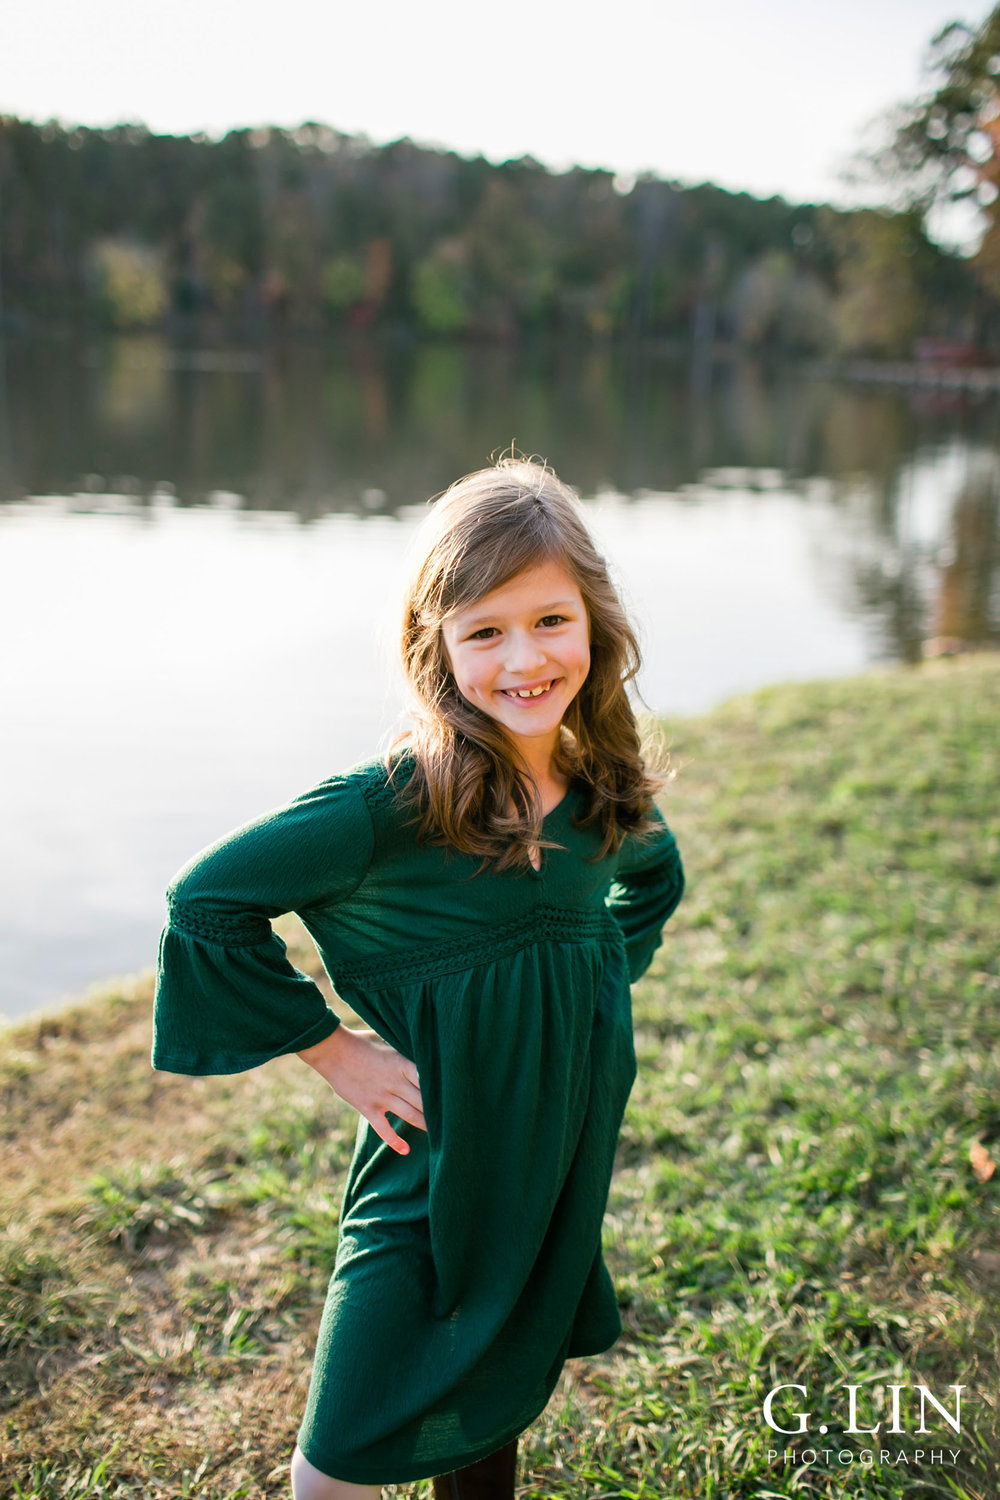 Raleigh Family Photographer | G. Lin Photography | Children's portrait of oldest sister